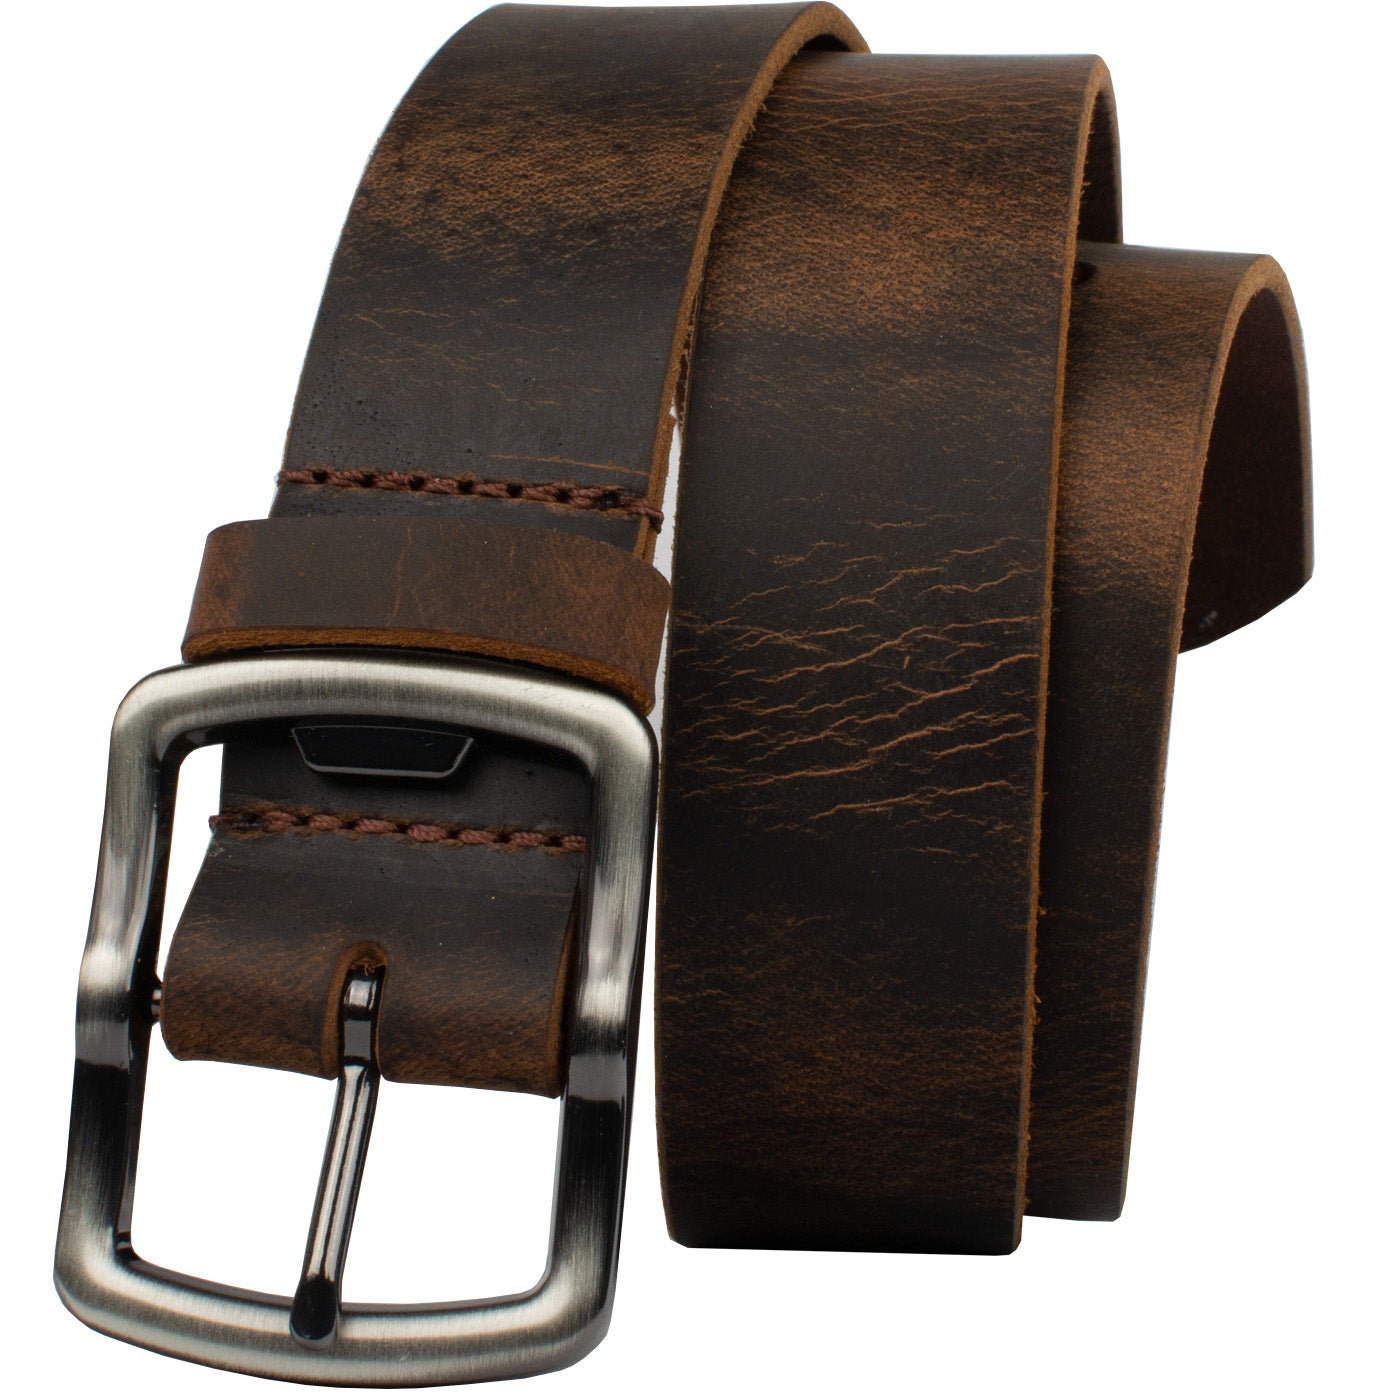 Rocky River Brown Belt by Nickel Smart - athenaallergy.com, nickel free